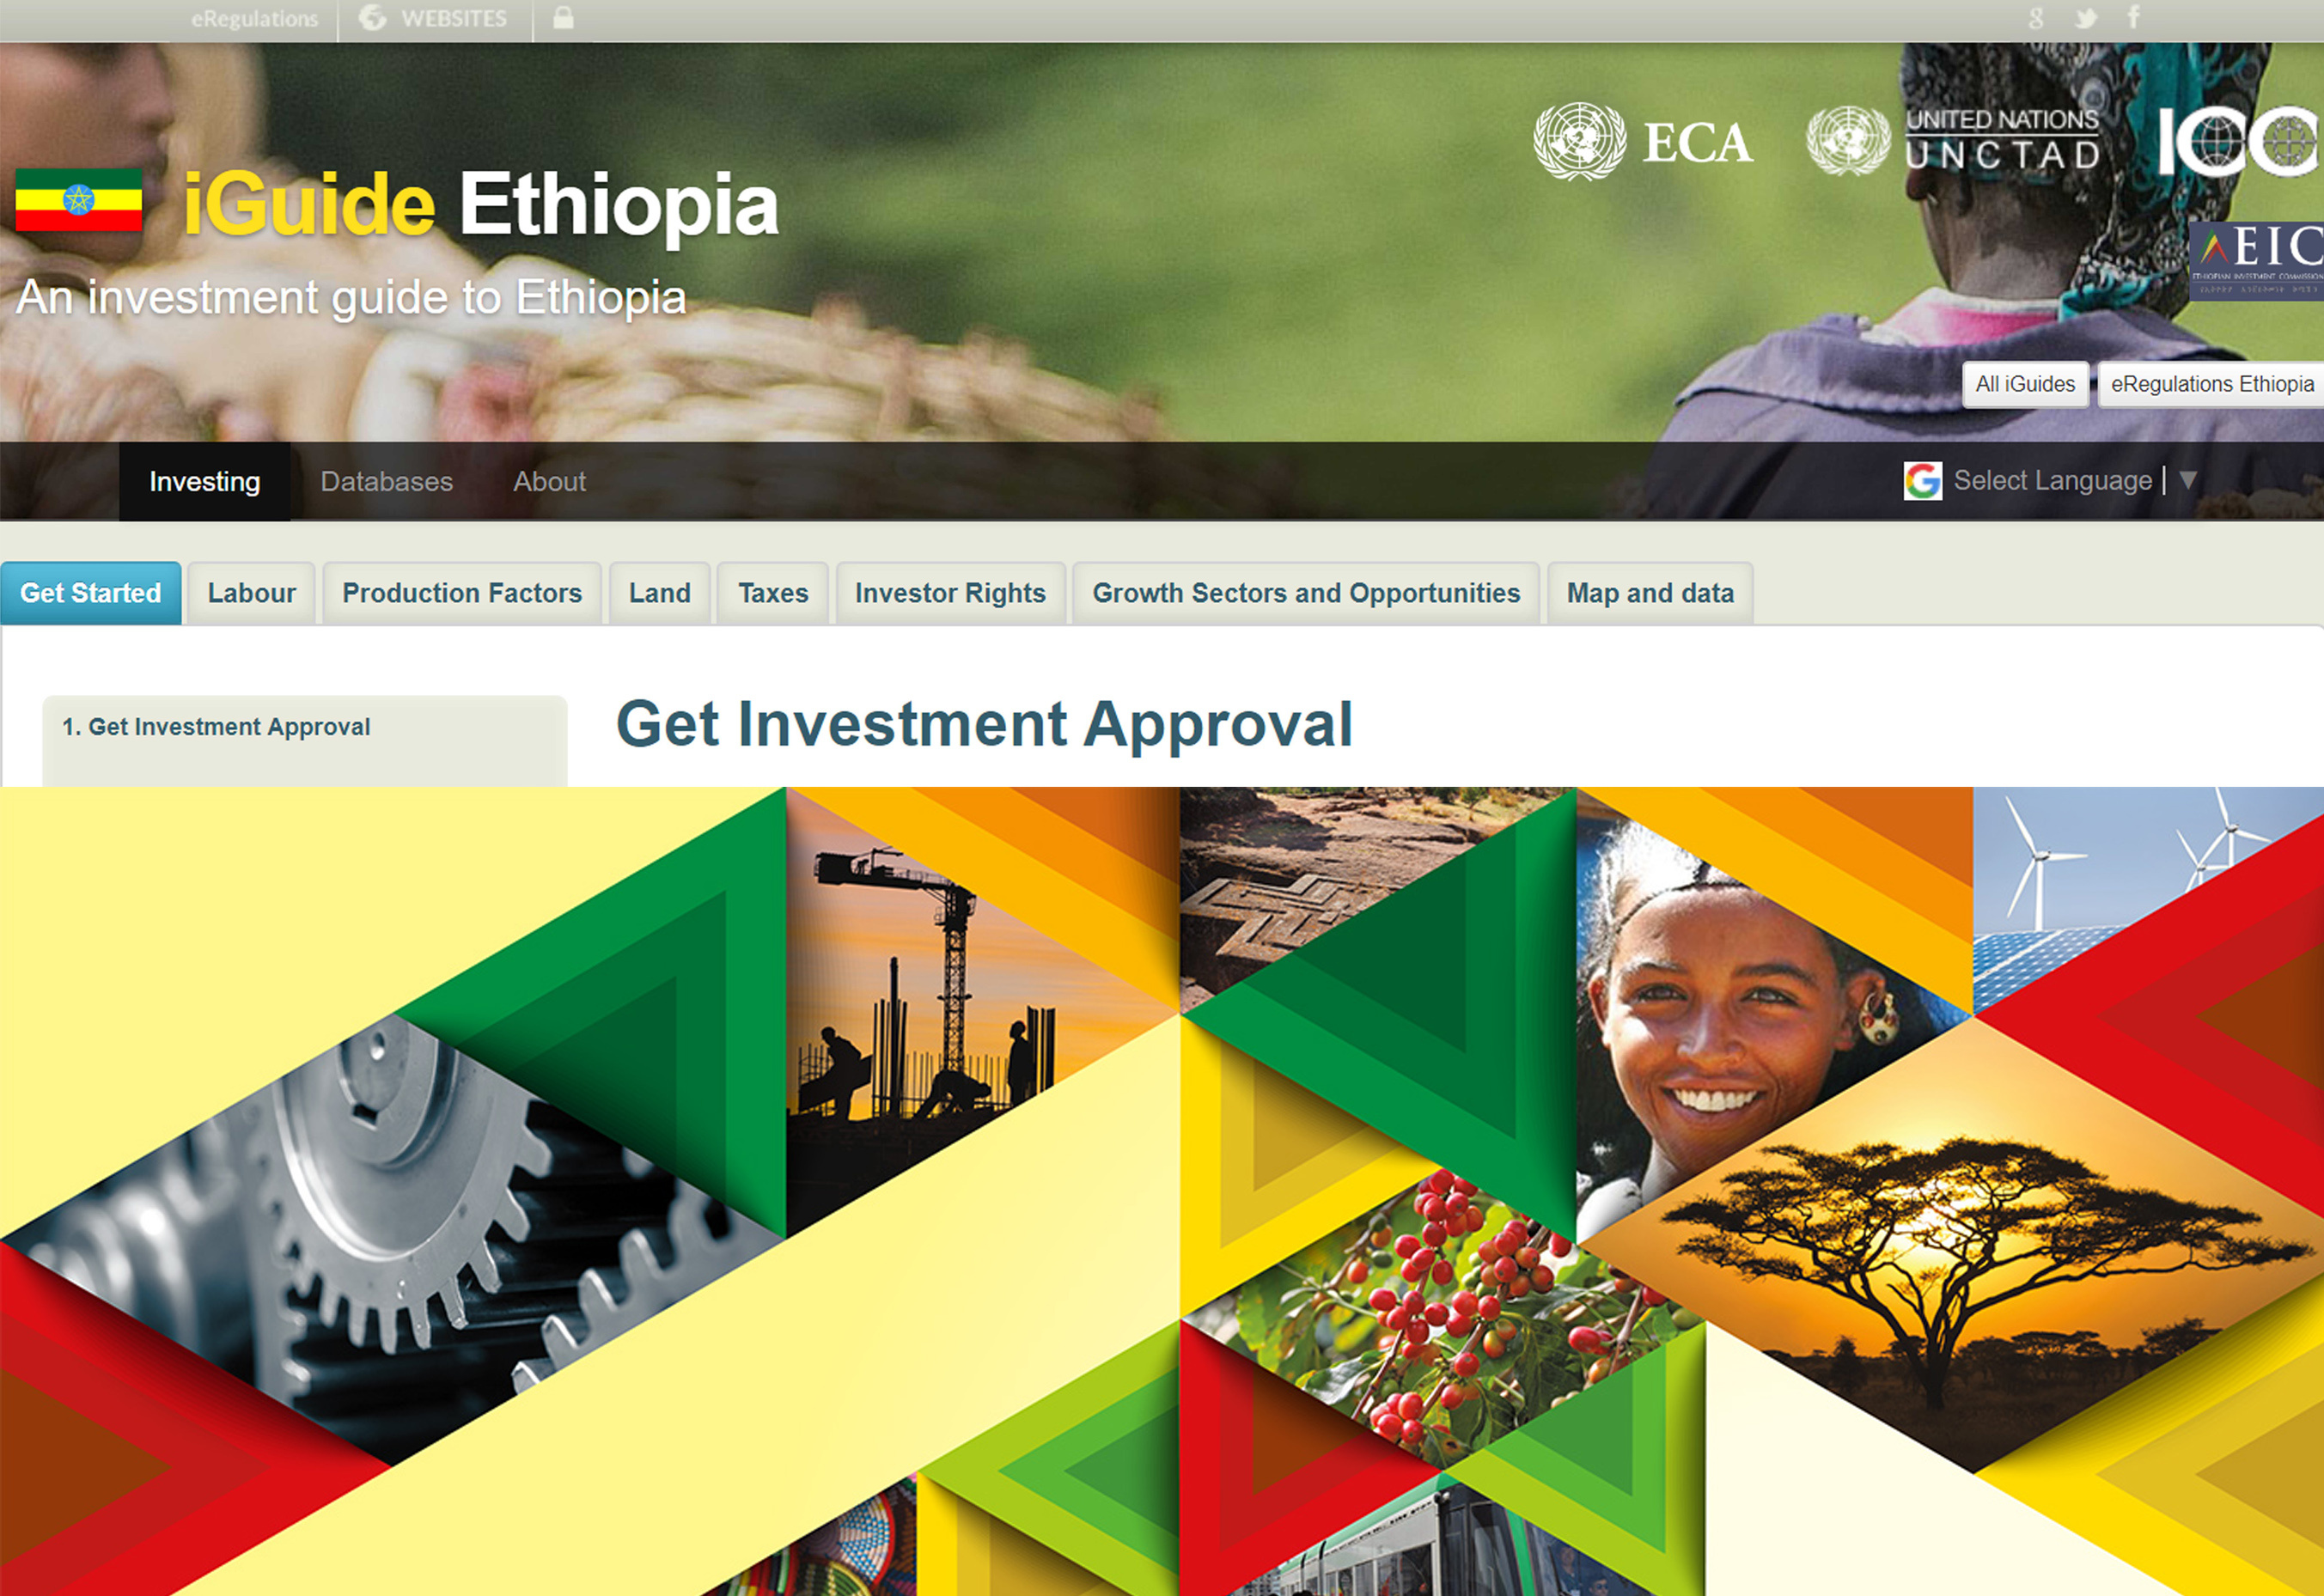 An Investment Guide to Ethiopia